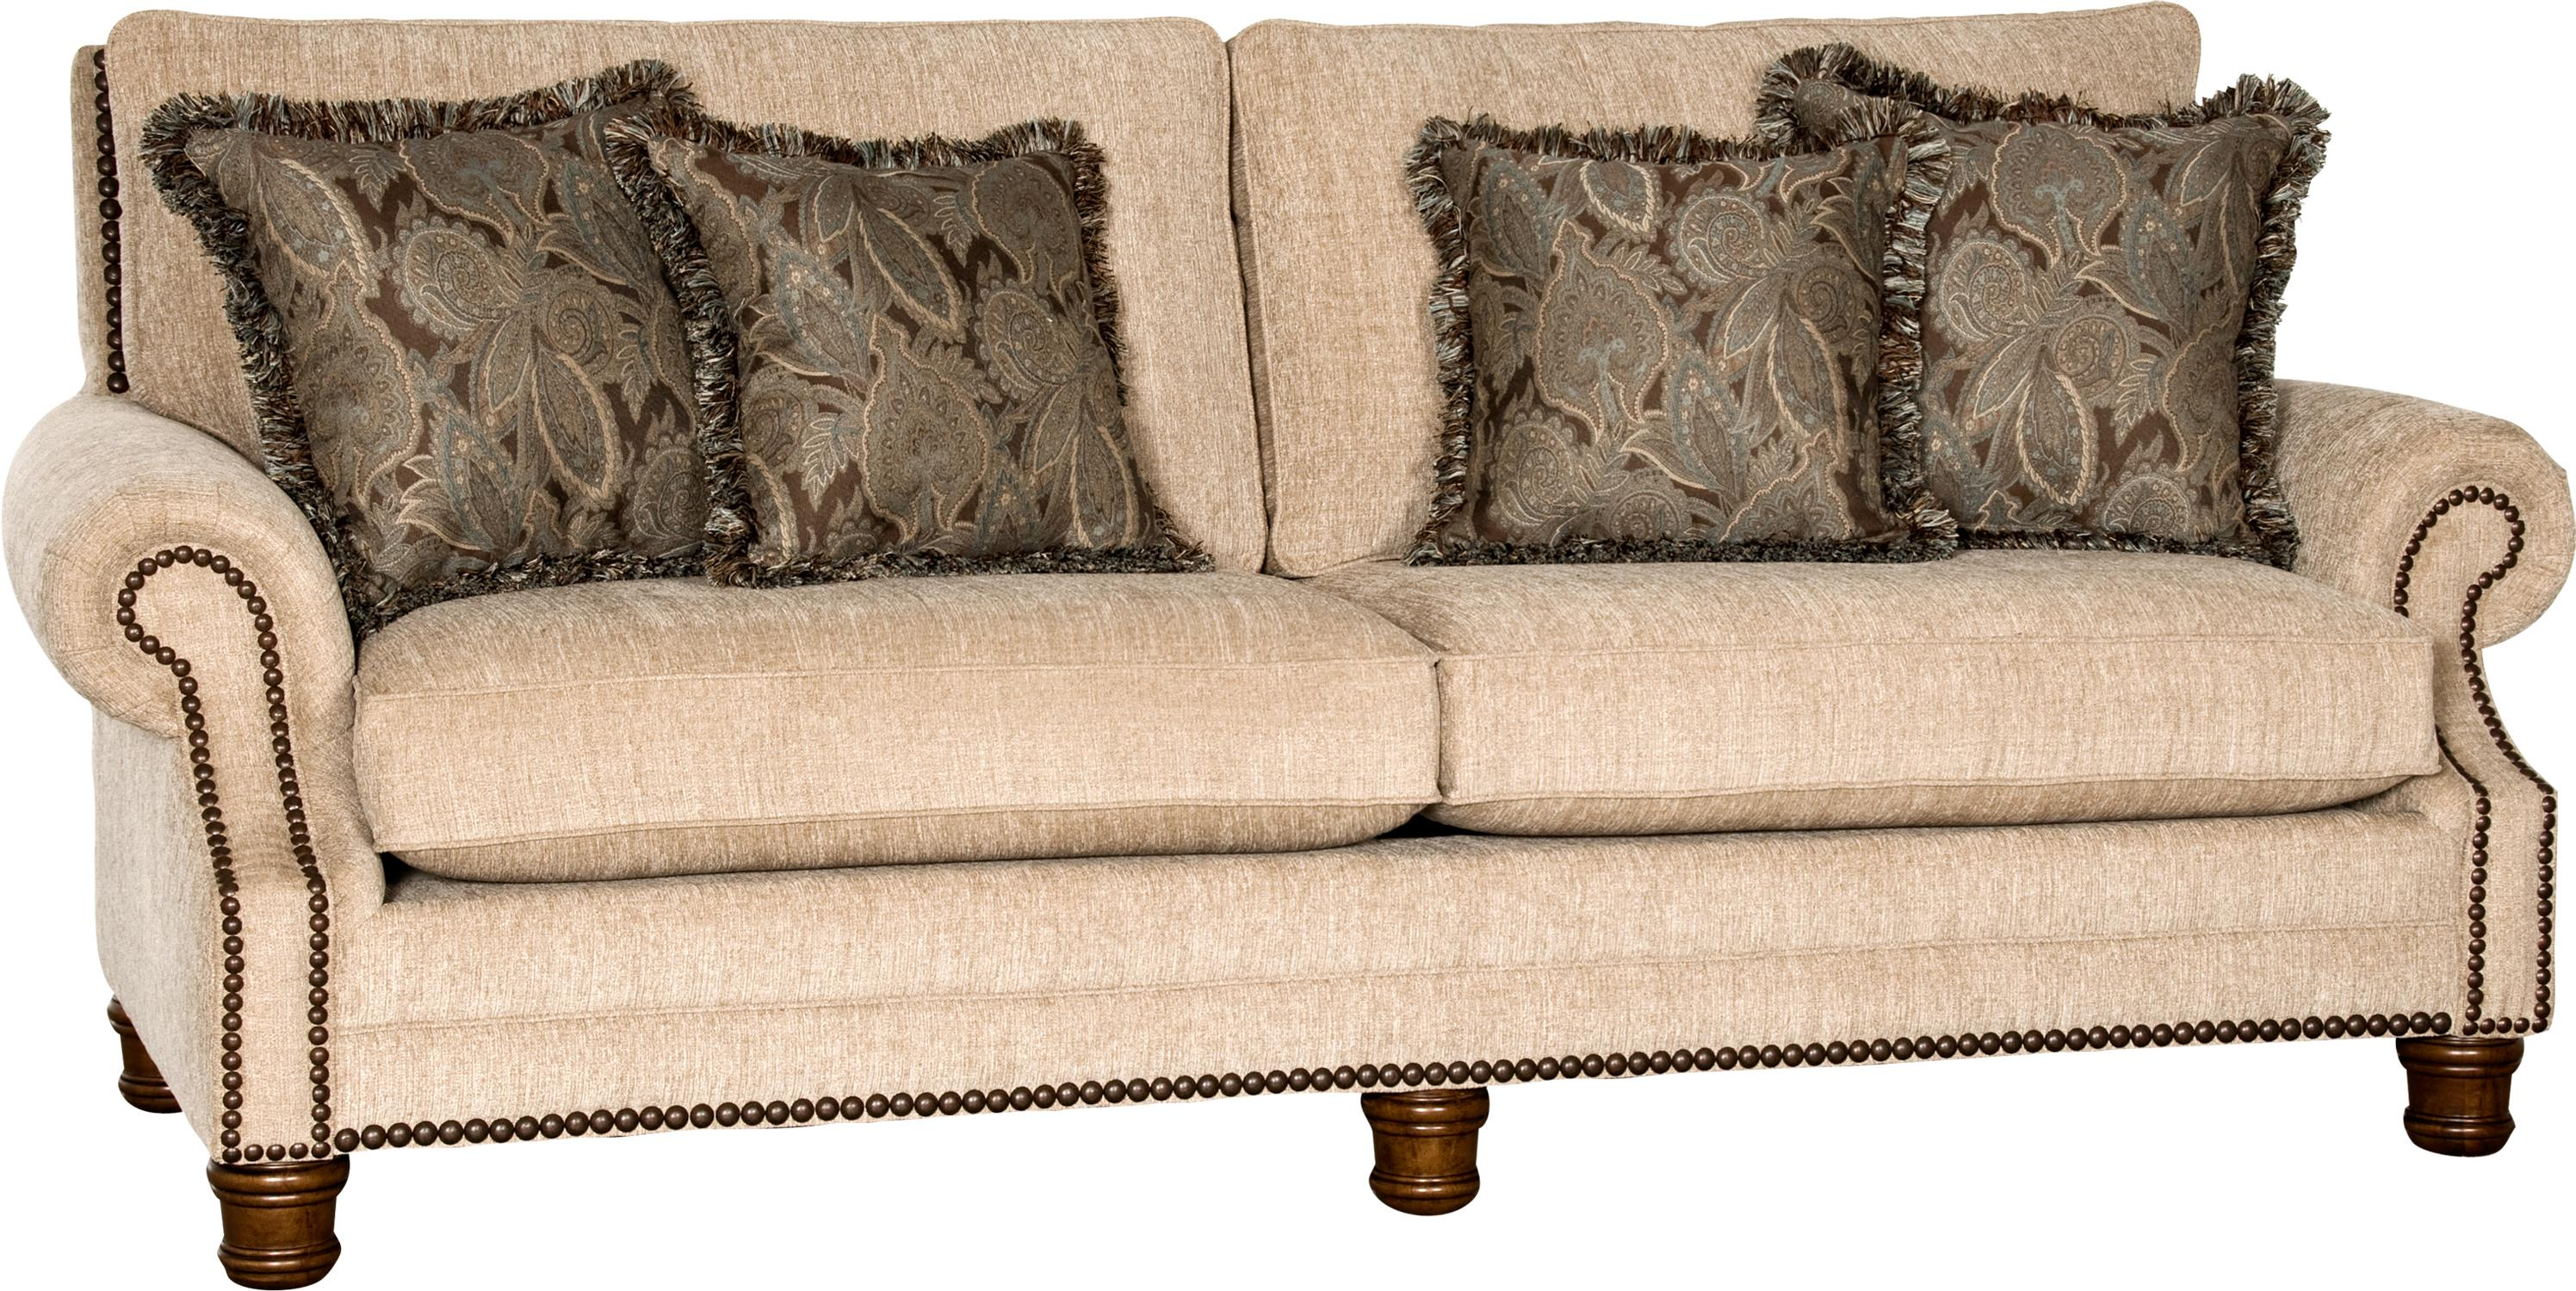 5790 Traditional Sofa by Mayo at Miller Waldrop Furniture and Decor